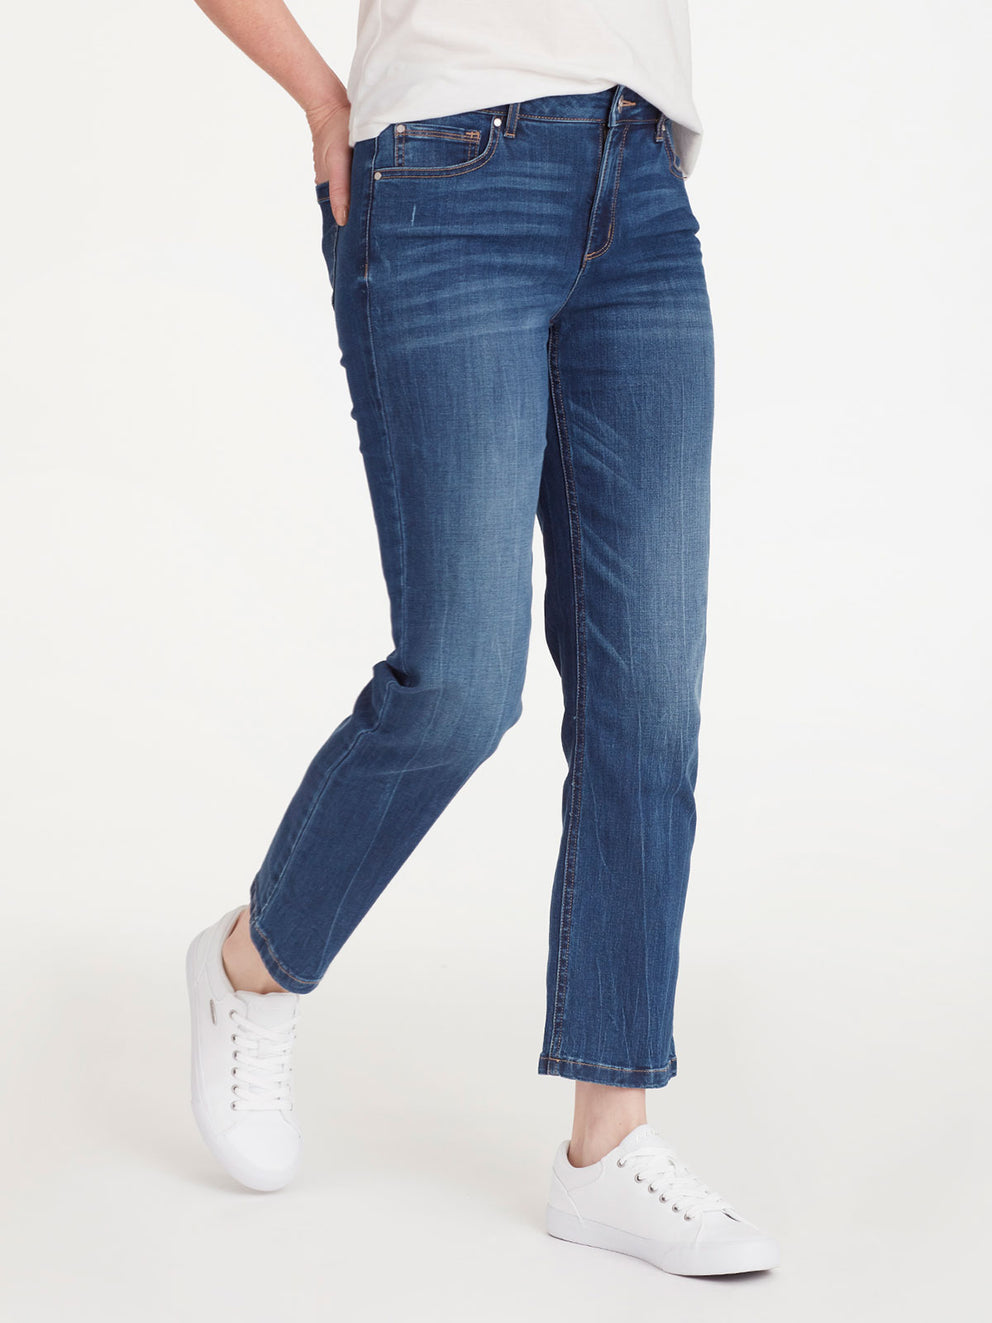 The Jones New York Lexington Montana Wash Ankle Jeans in color Montana Wash - Image Position 2